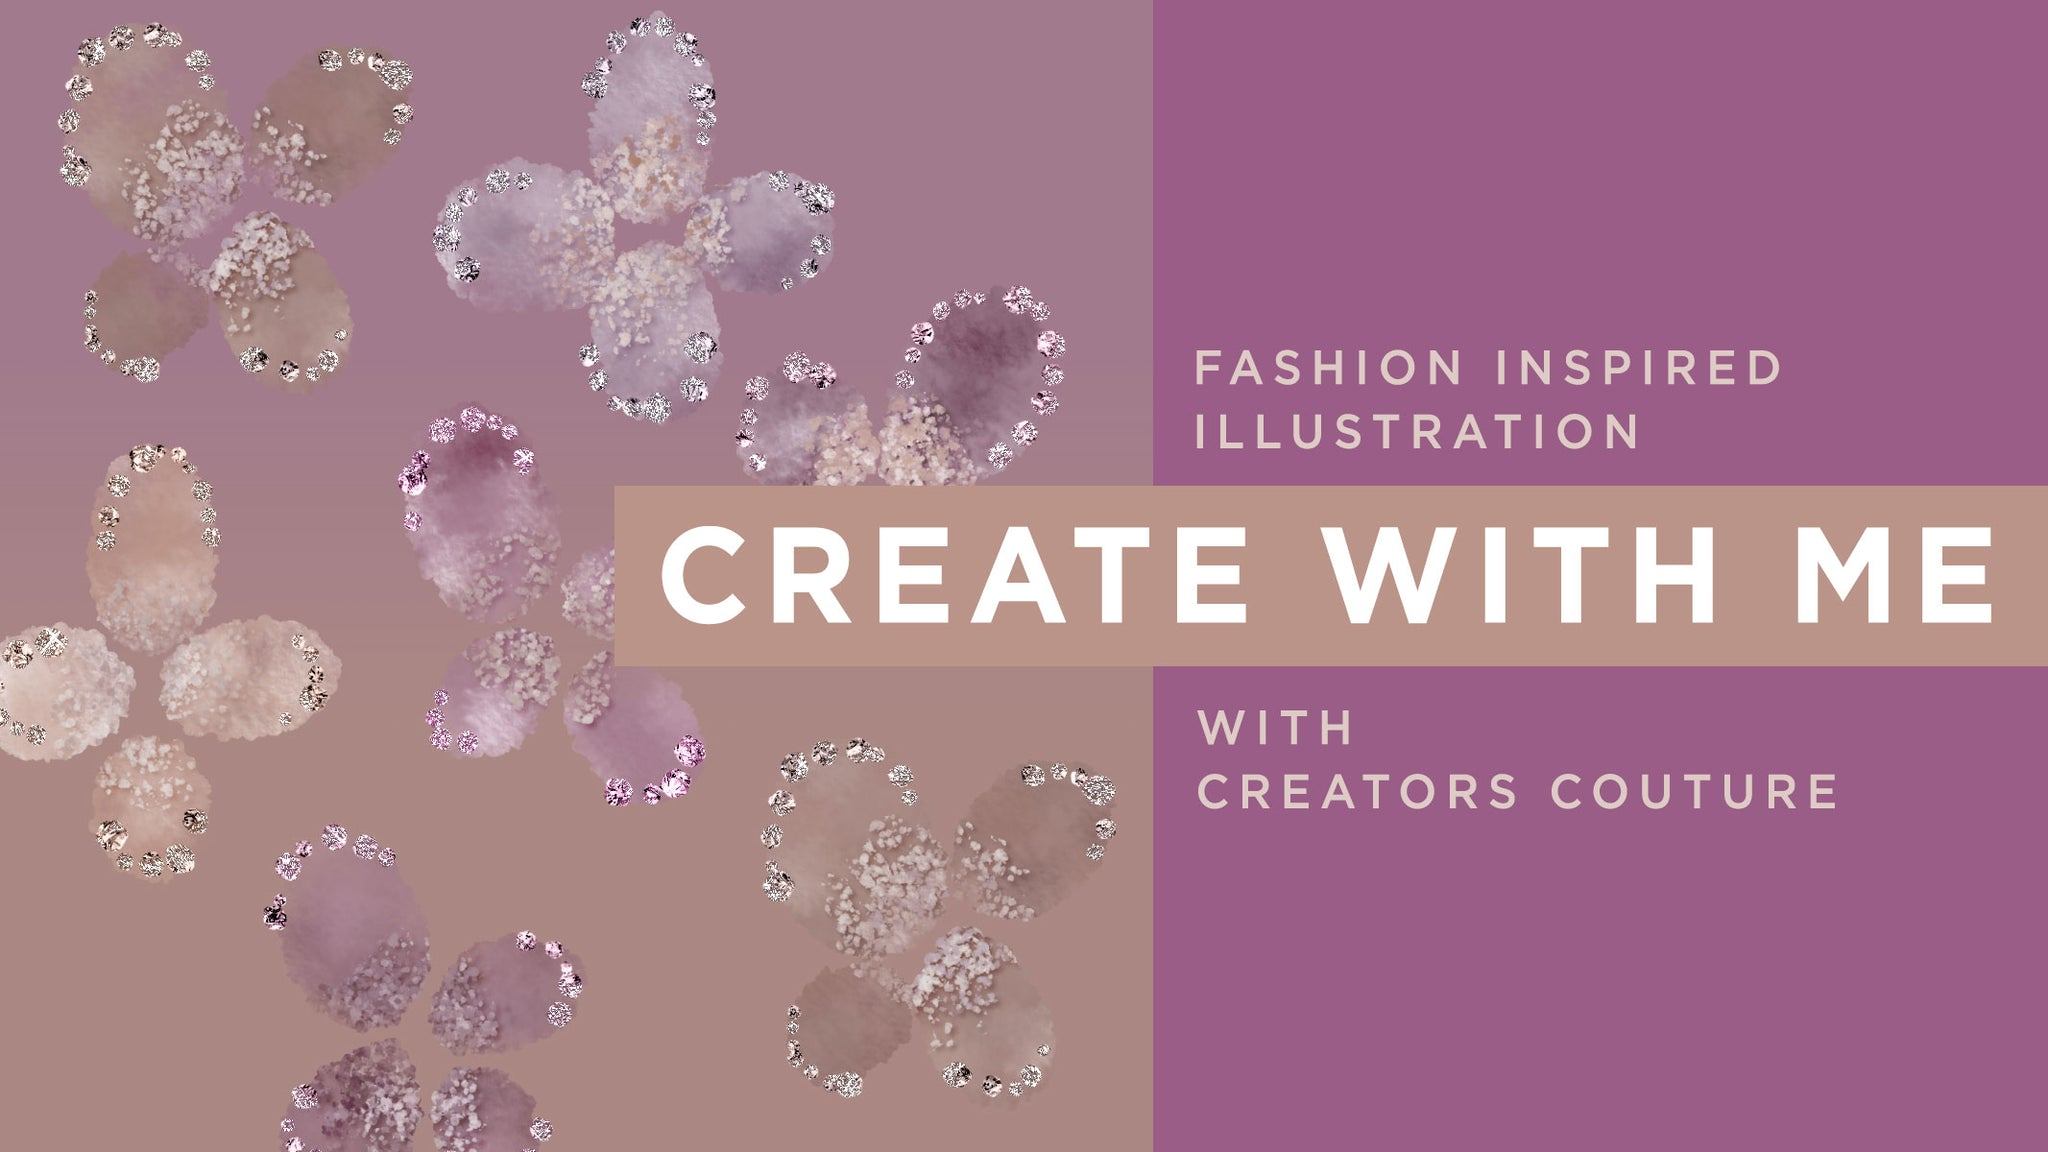 Delicate Shimmery Flower Art Inspired by Runway Style: Photoshop Tutorial